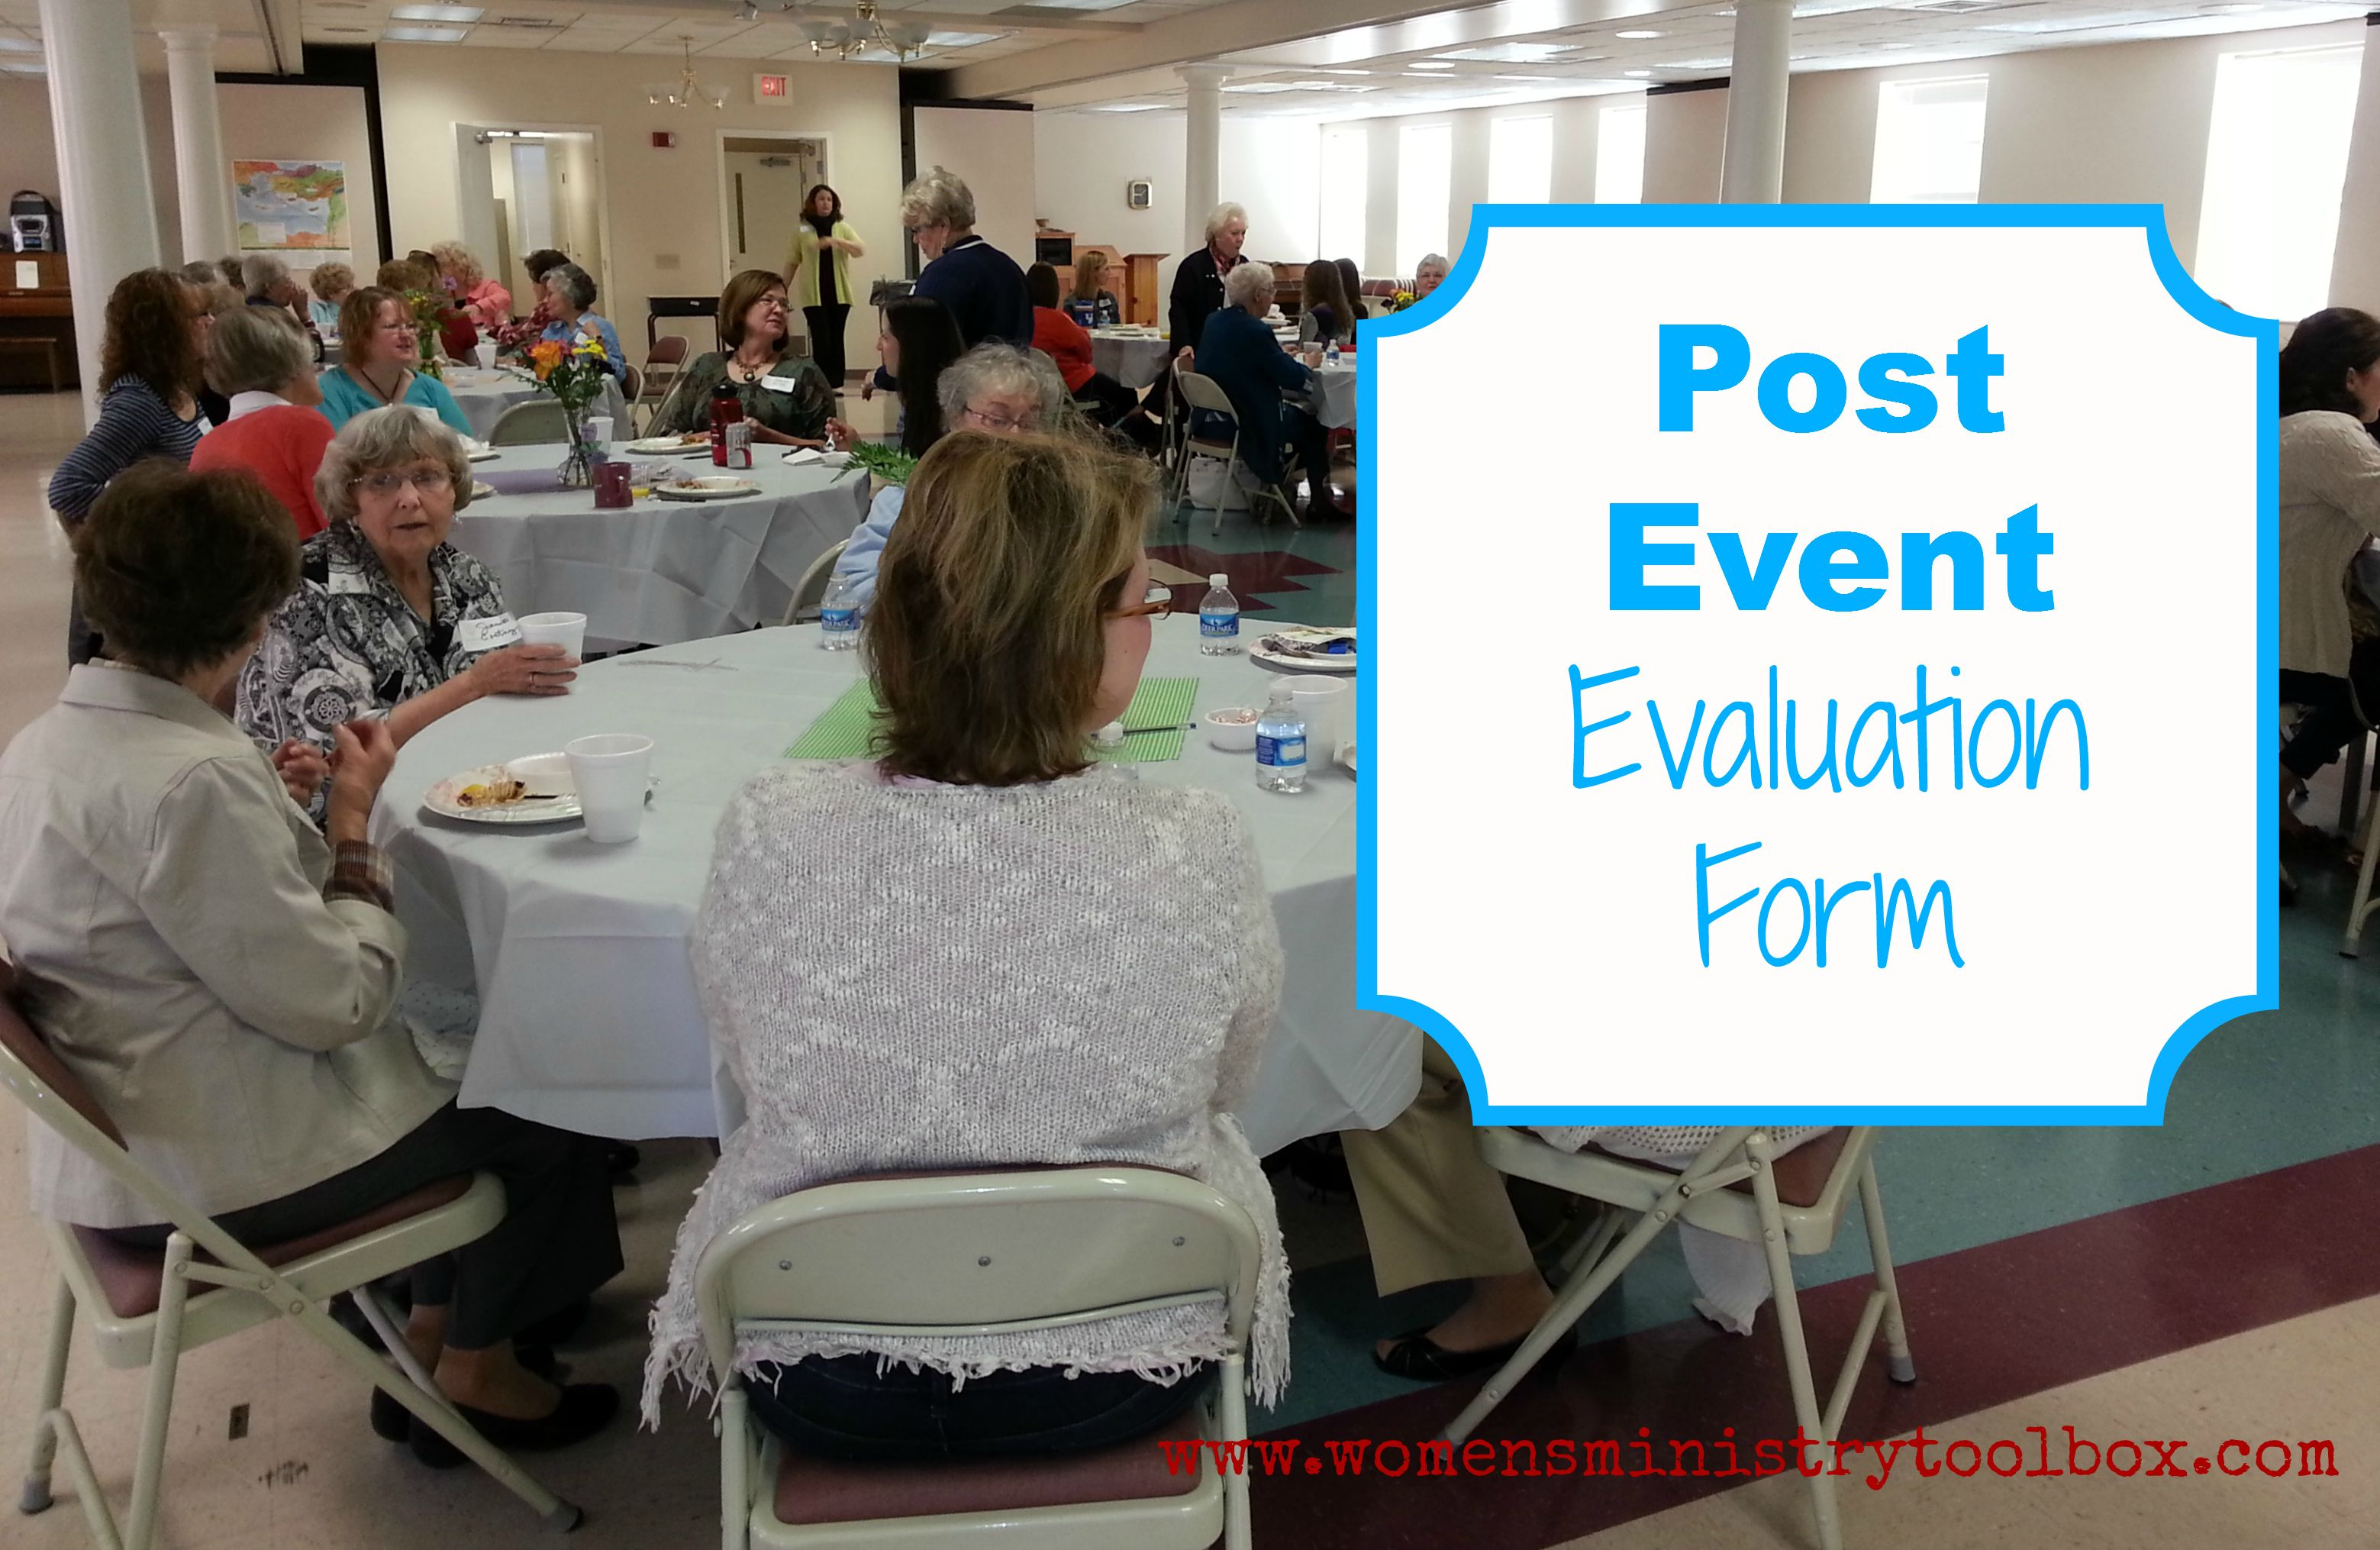 Post Event Evaluation Form Free Printable  Free Printable And